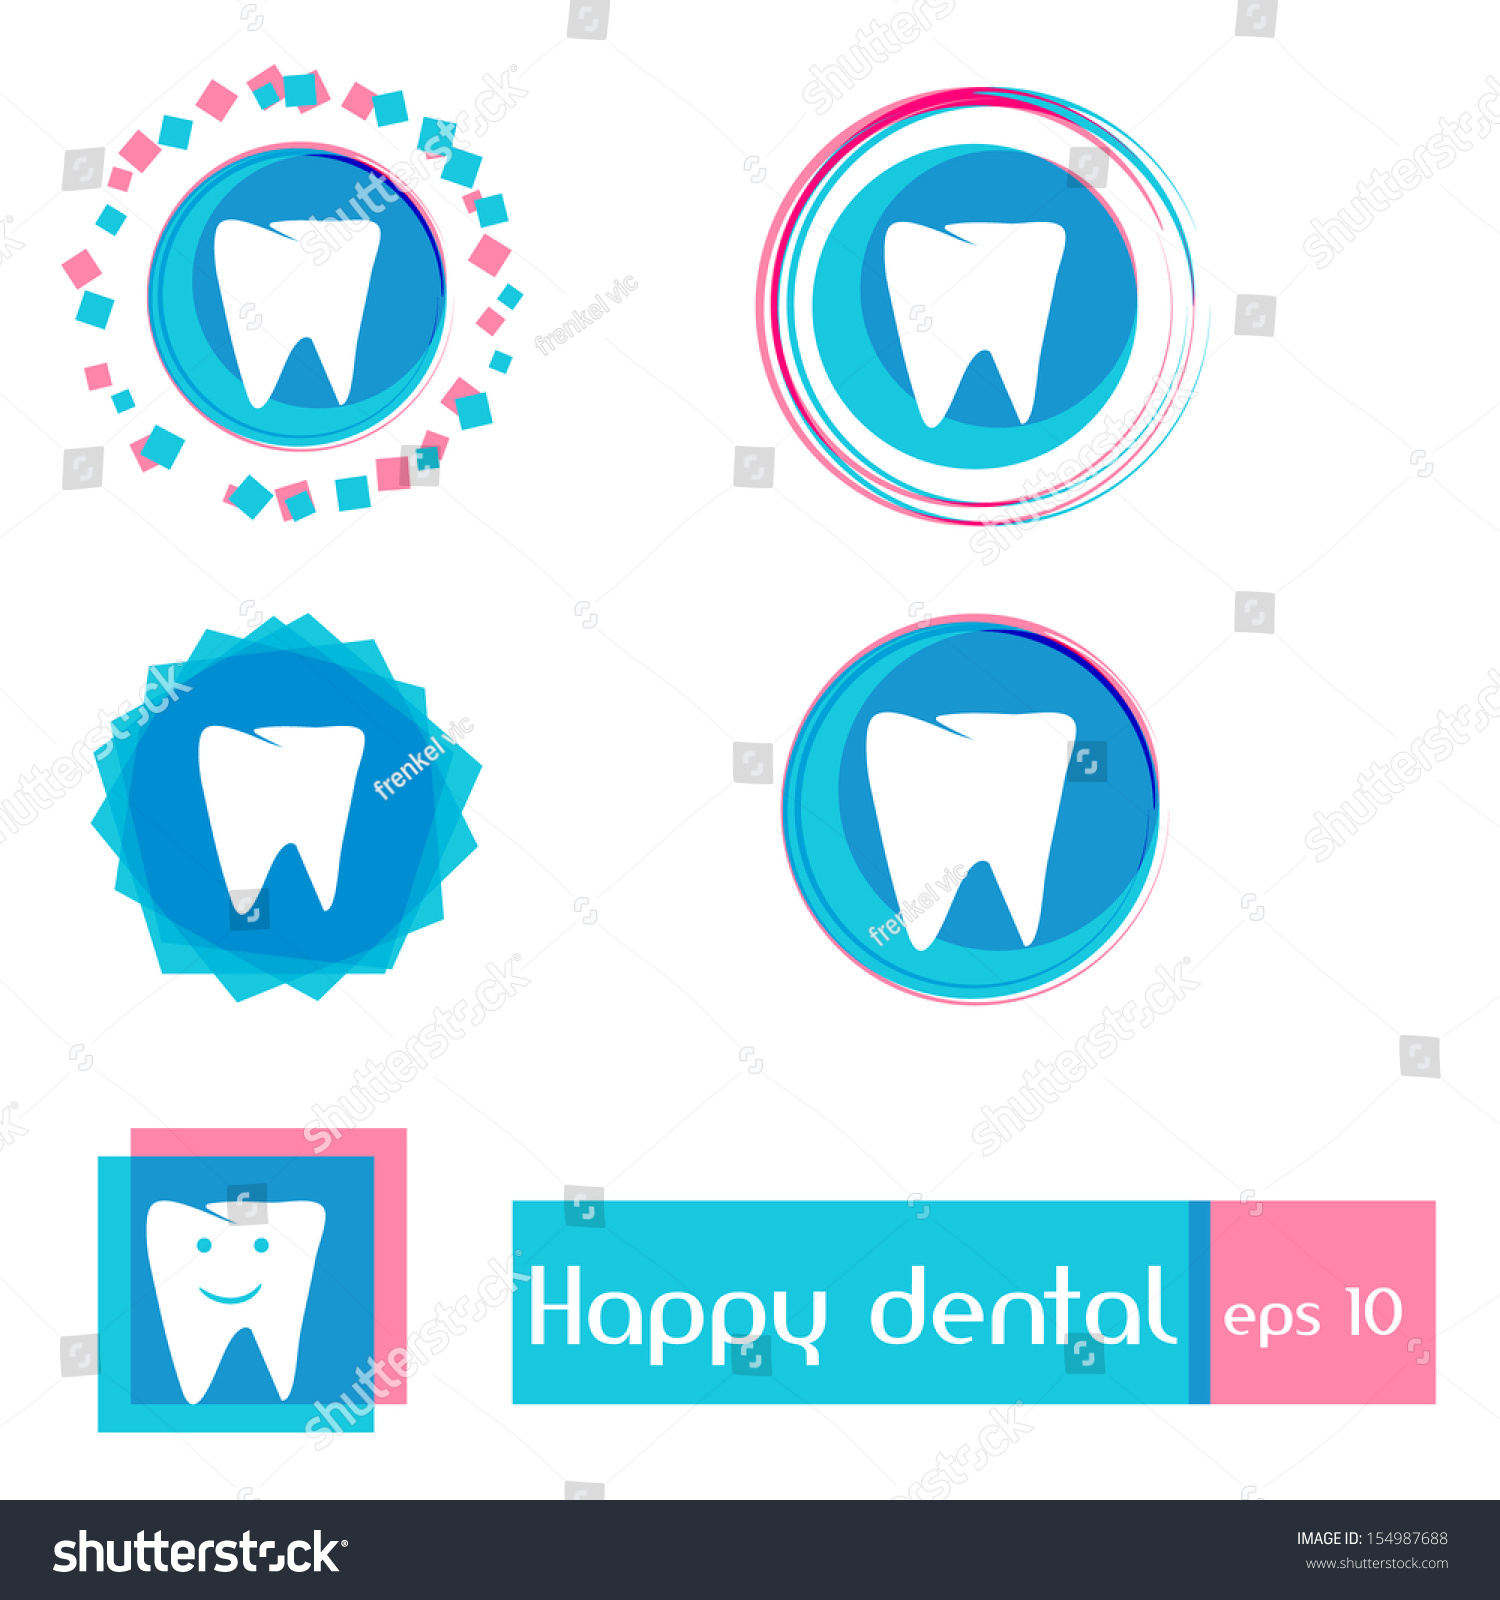 dental clinic vector icons simple clean stock vector  simple clean design happy smile best for children